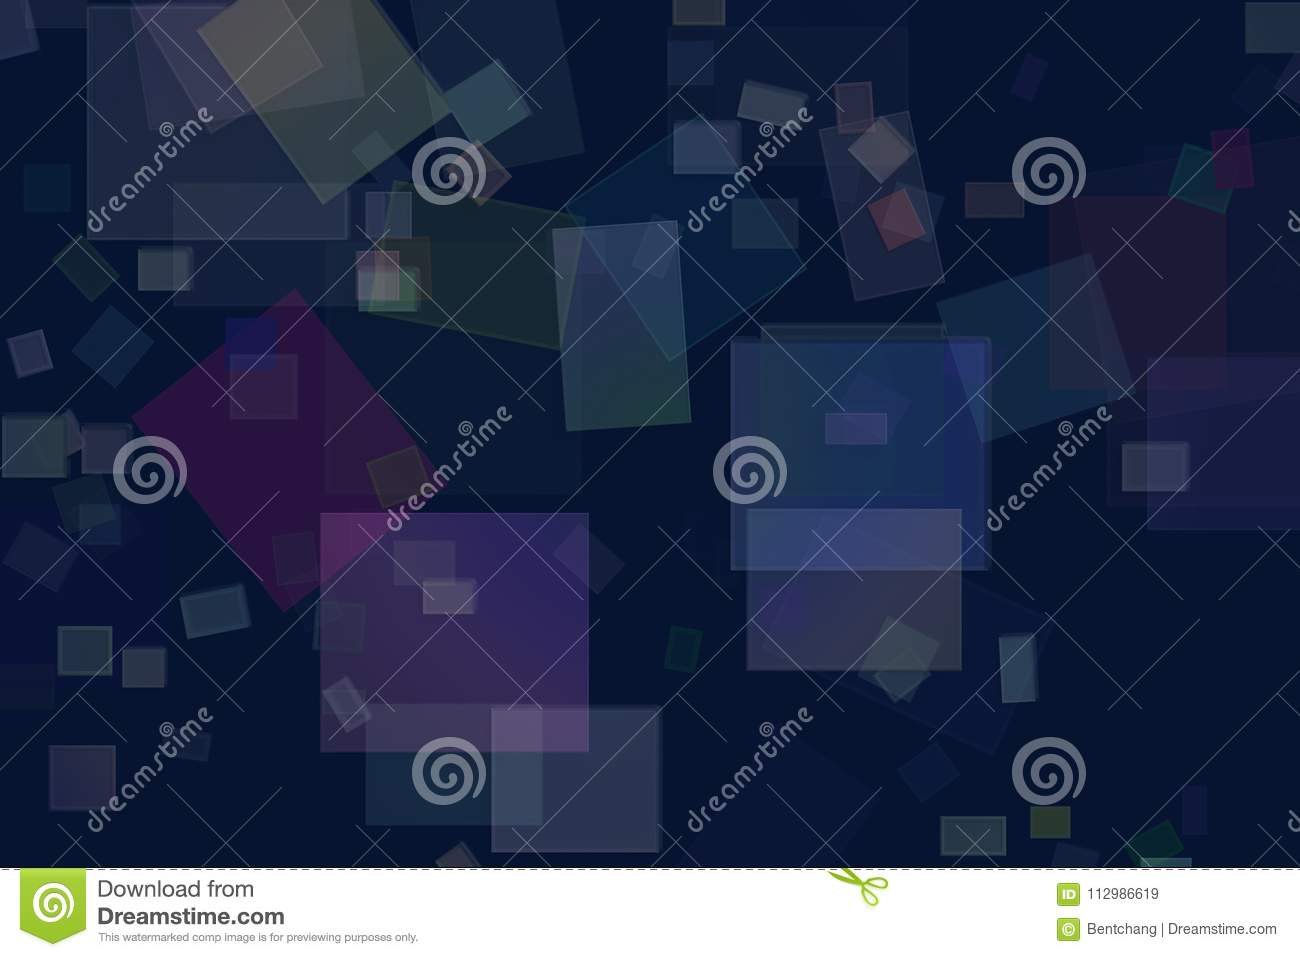 Texture background pattern. Abstract shape, good for design. Bubble, floor, old & artwork.